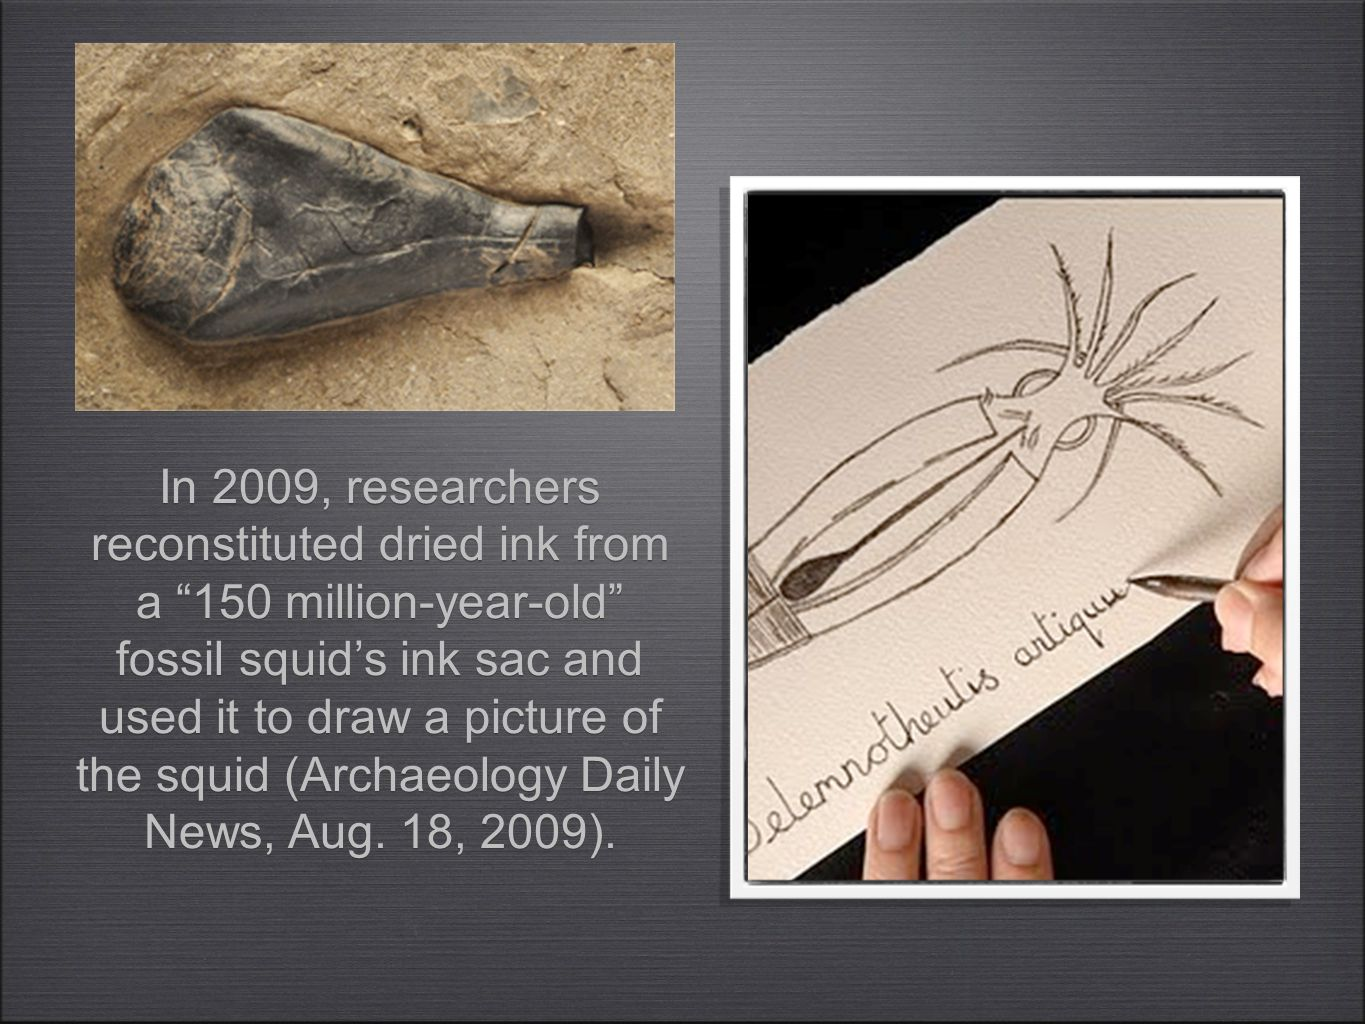 In 2009, researchers reconstituted dried ink from a 150 million-year-old fossil squid's ink sac and used it to draw a picture of the squid (Archaeology Daily News, Aug.